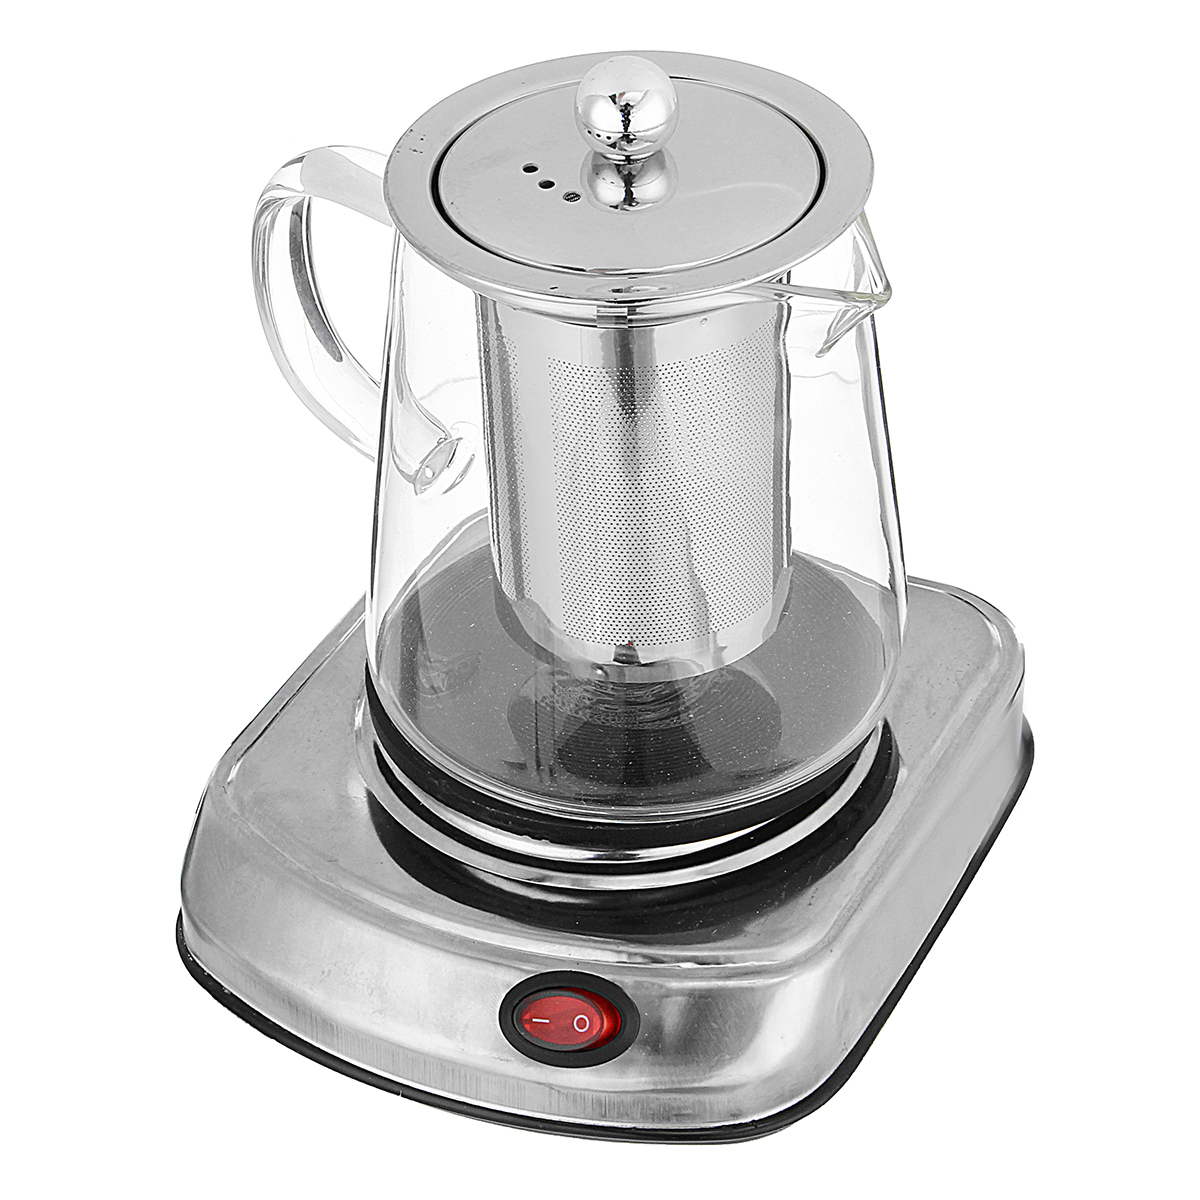 Electric Stove Mini Coffee Brewing Tea Stove Glass Tea Maker Electric Kettle Water Heater